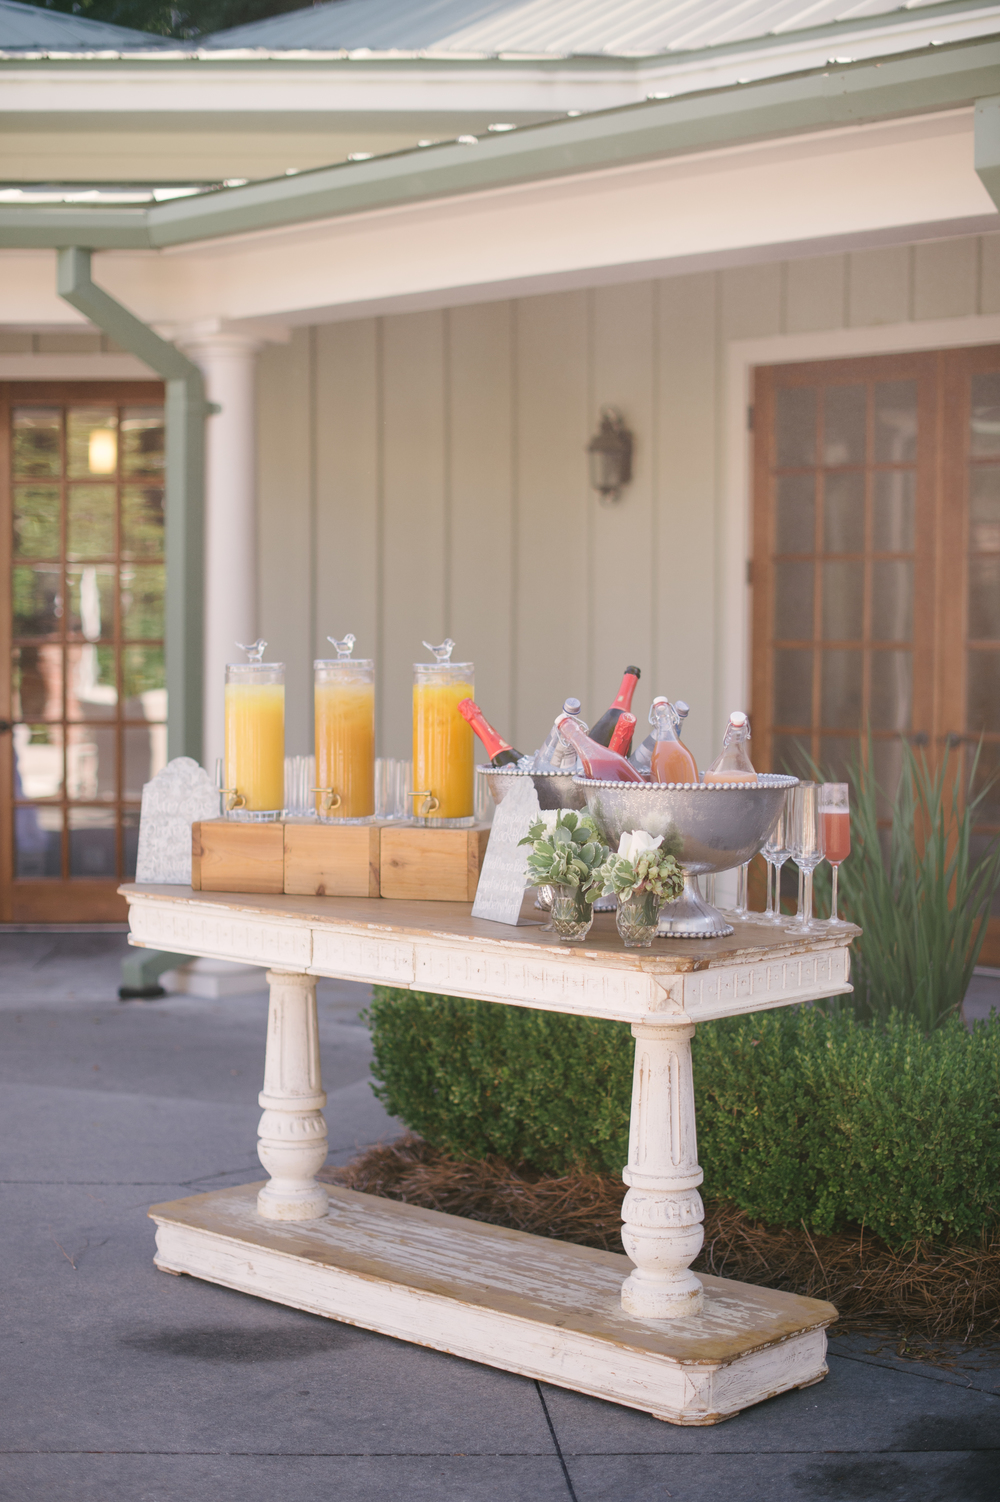 {The mimosa bar compliments of Snyder Events, Polished! and Squeeze On site}